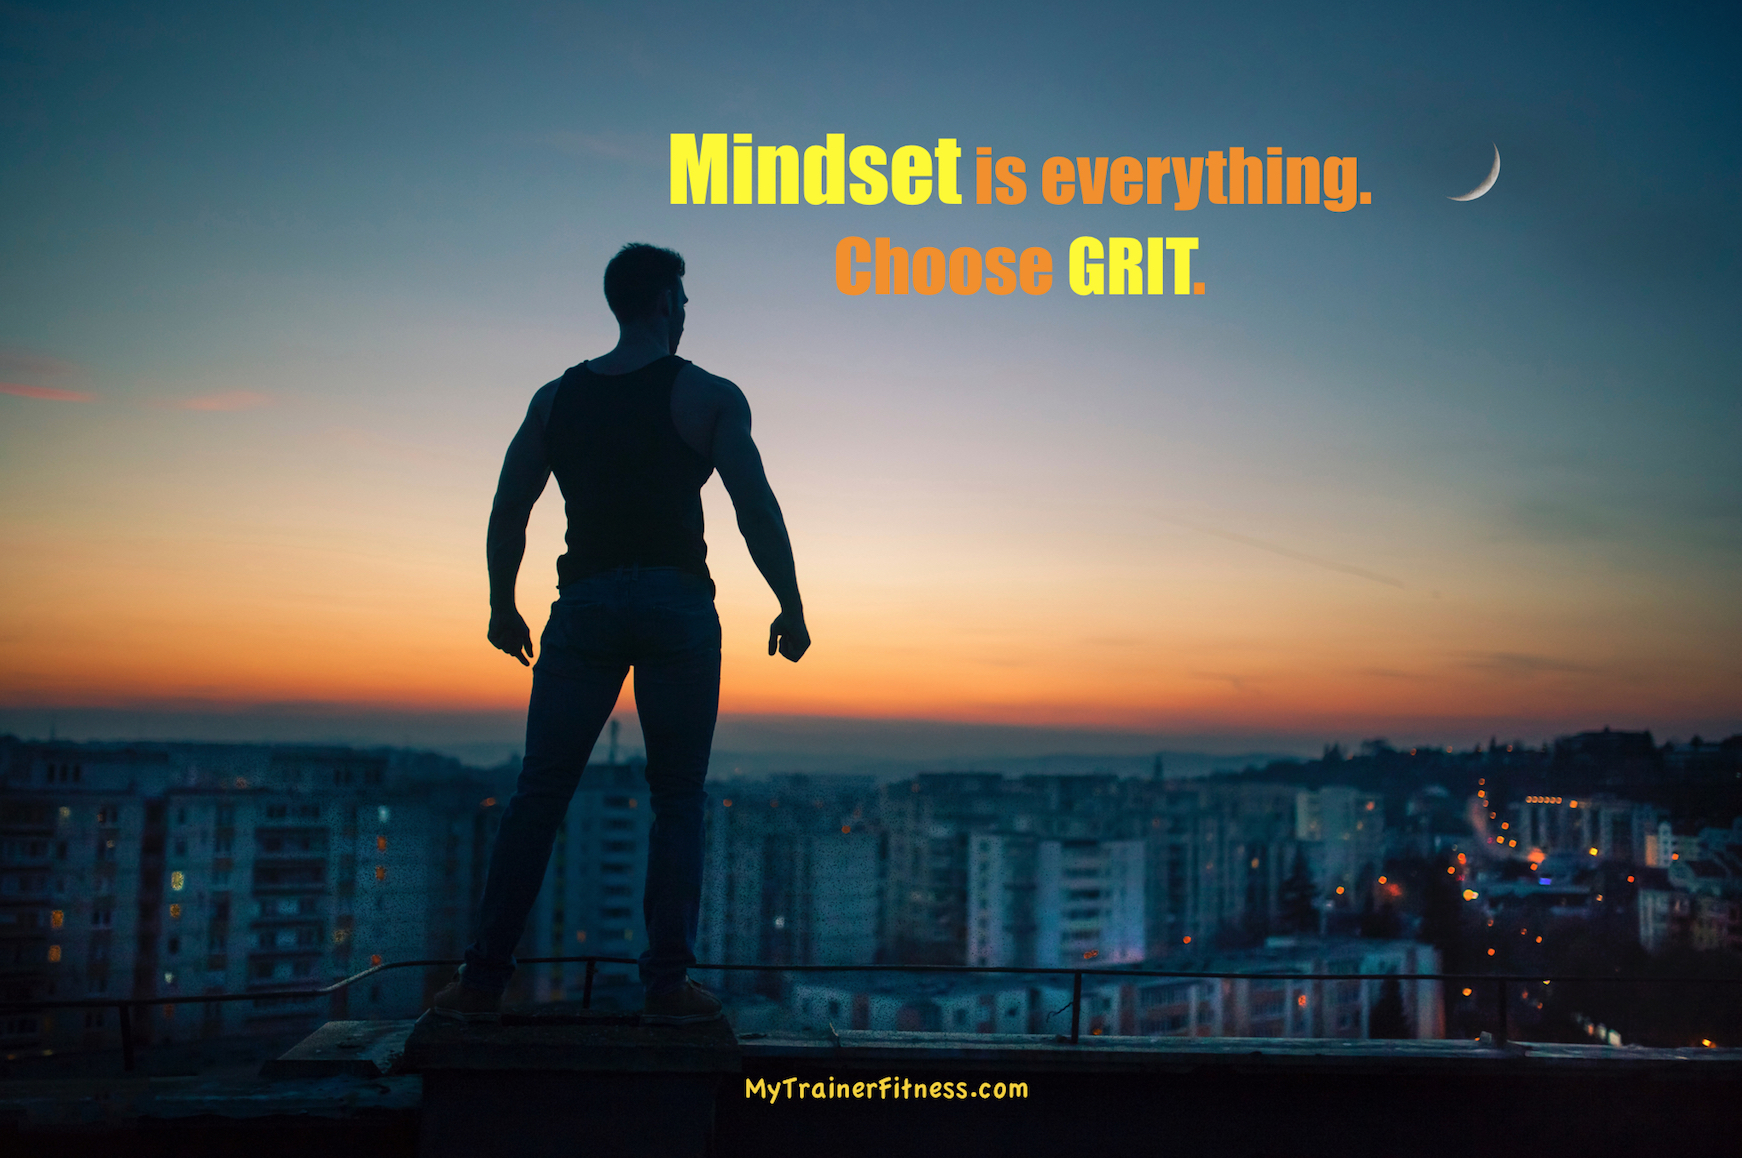 Your Mindset is Everything!